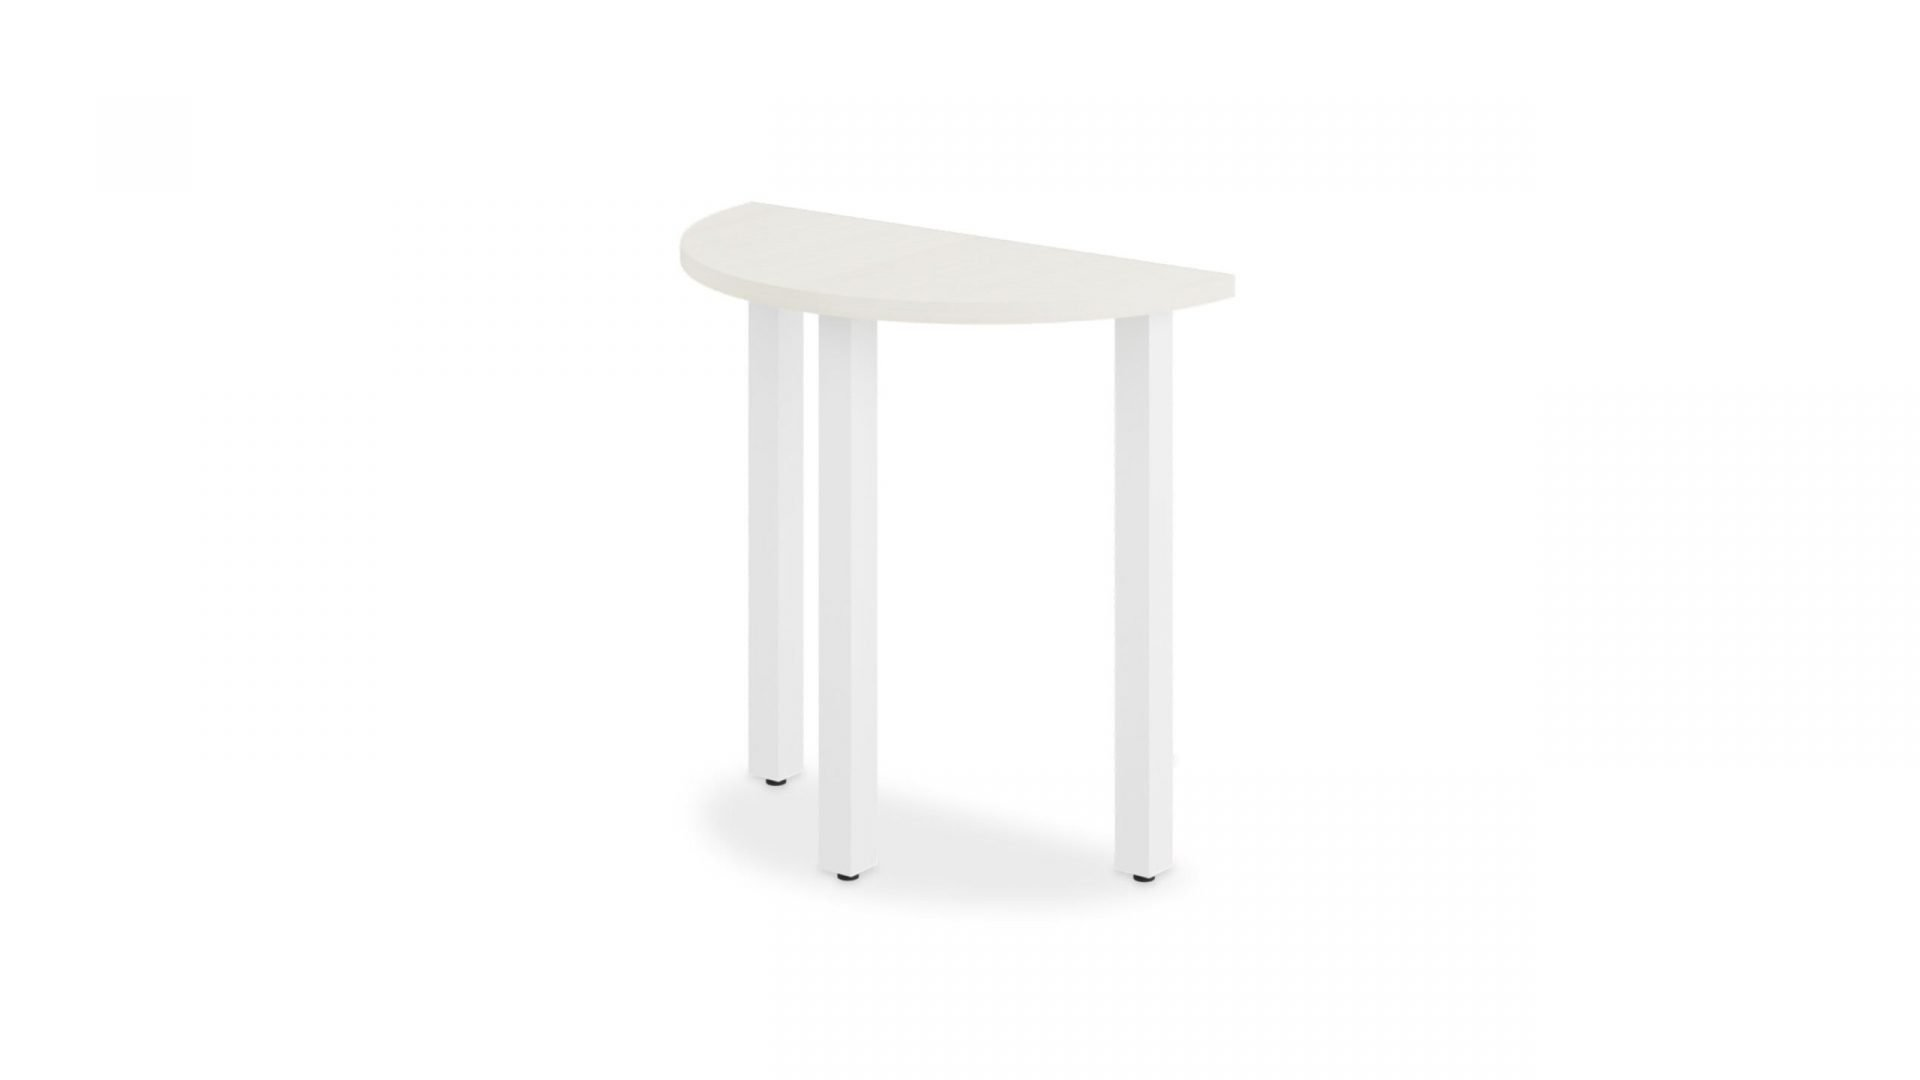 Half Round Table 1664 in a white background